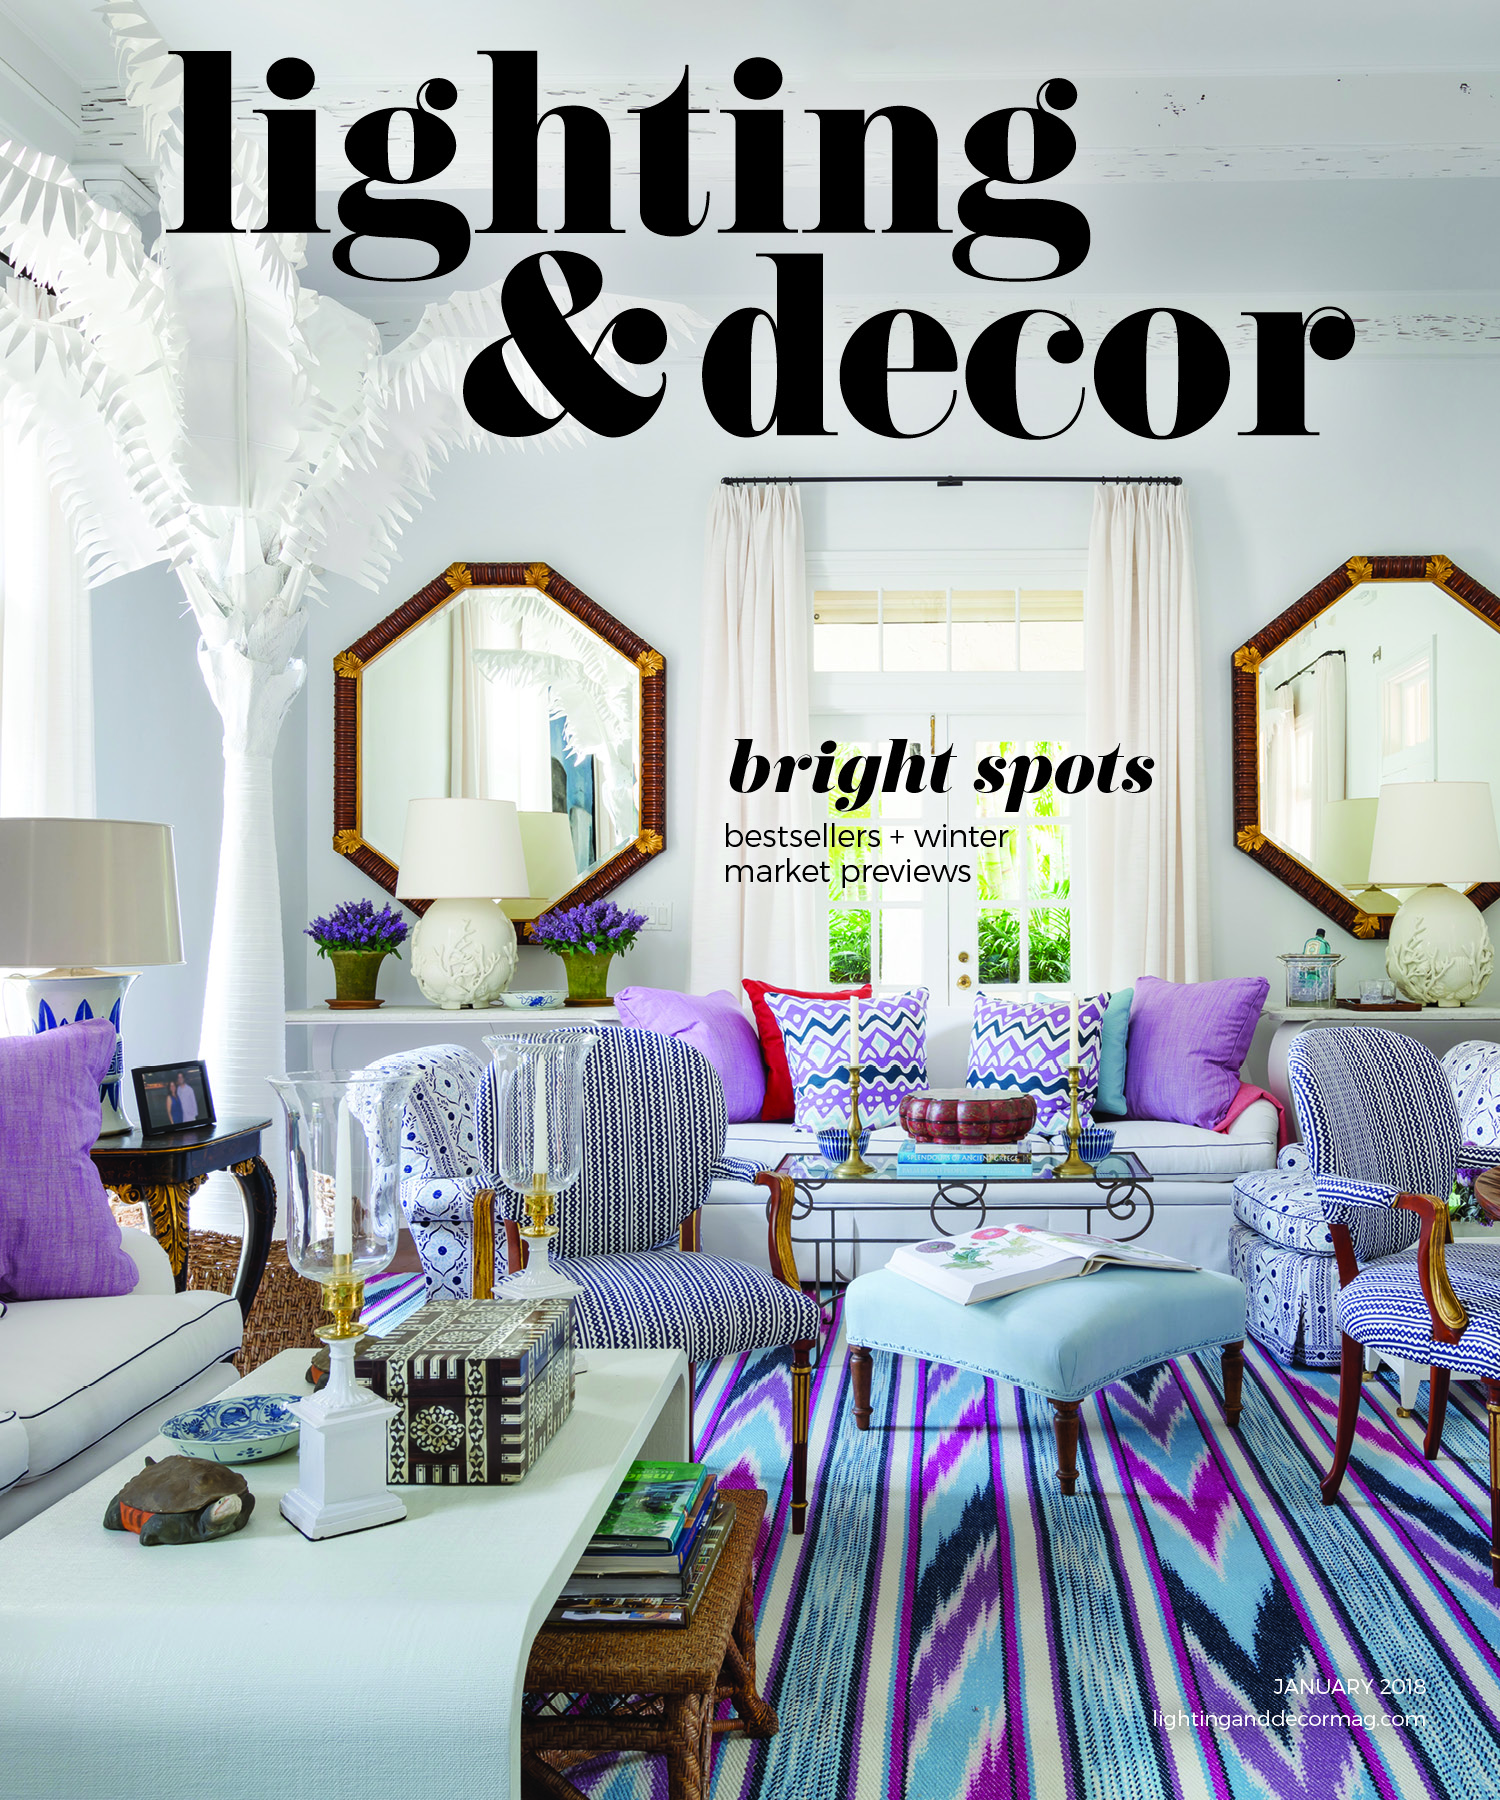 January 2018 Lighting & Decor magazine